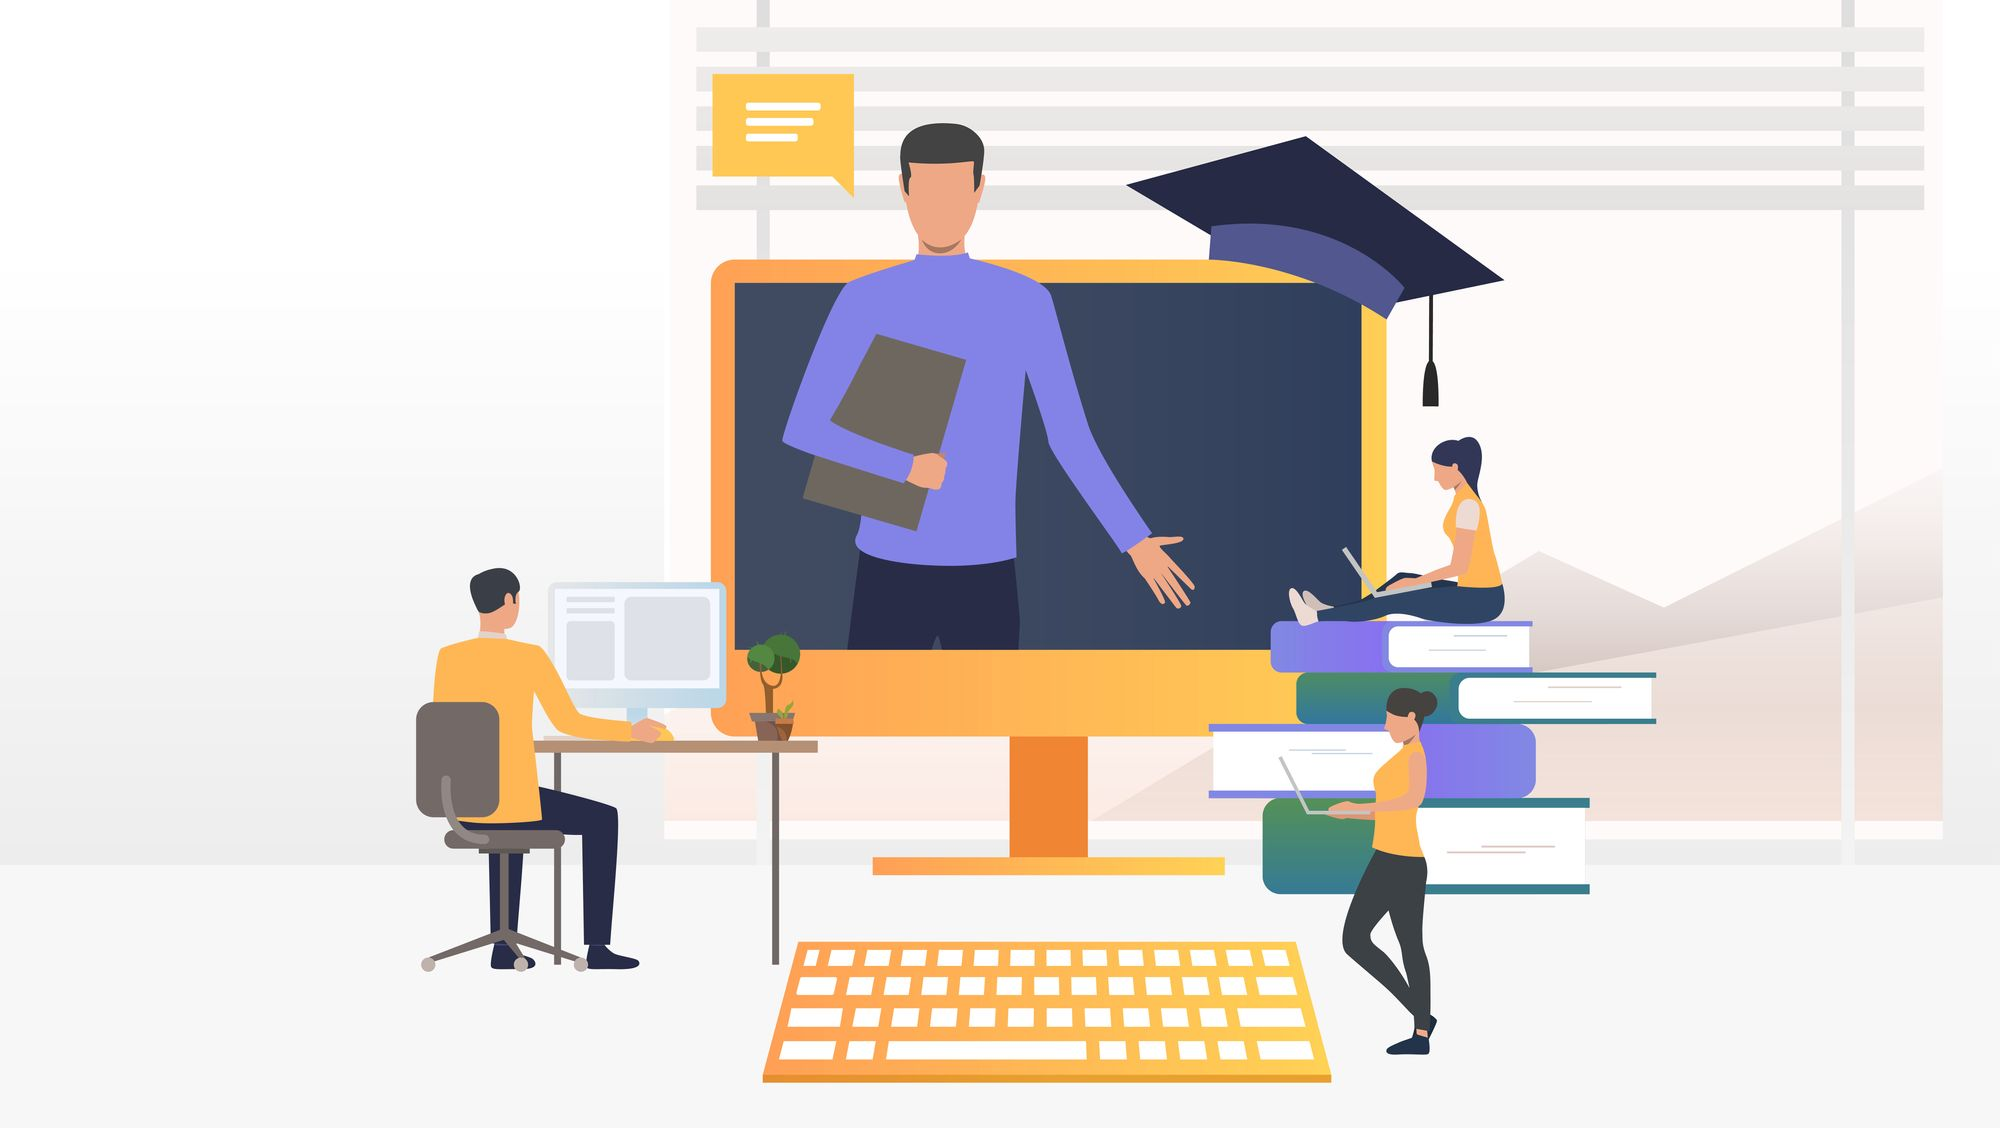 How can teachers prepare ahead for another year of online education?